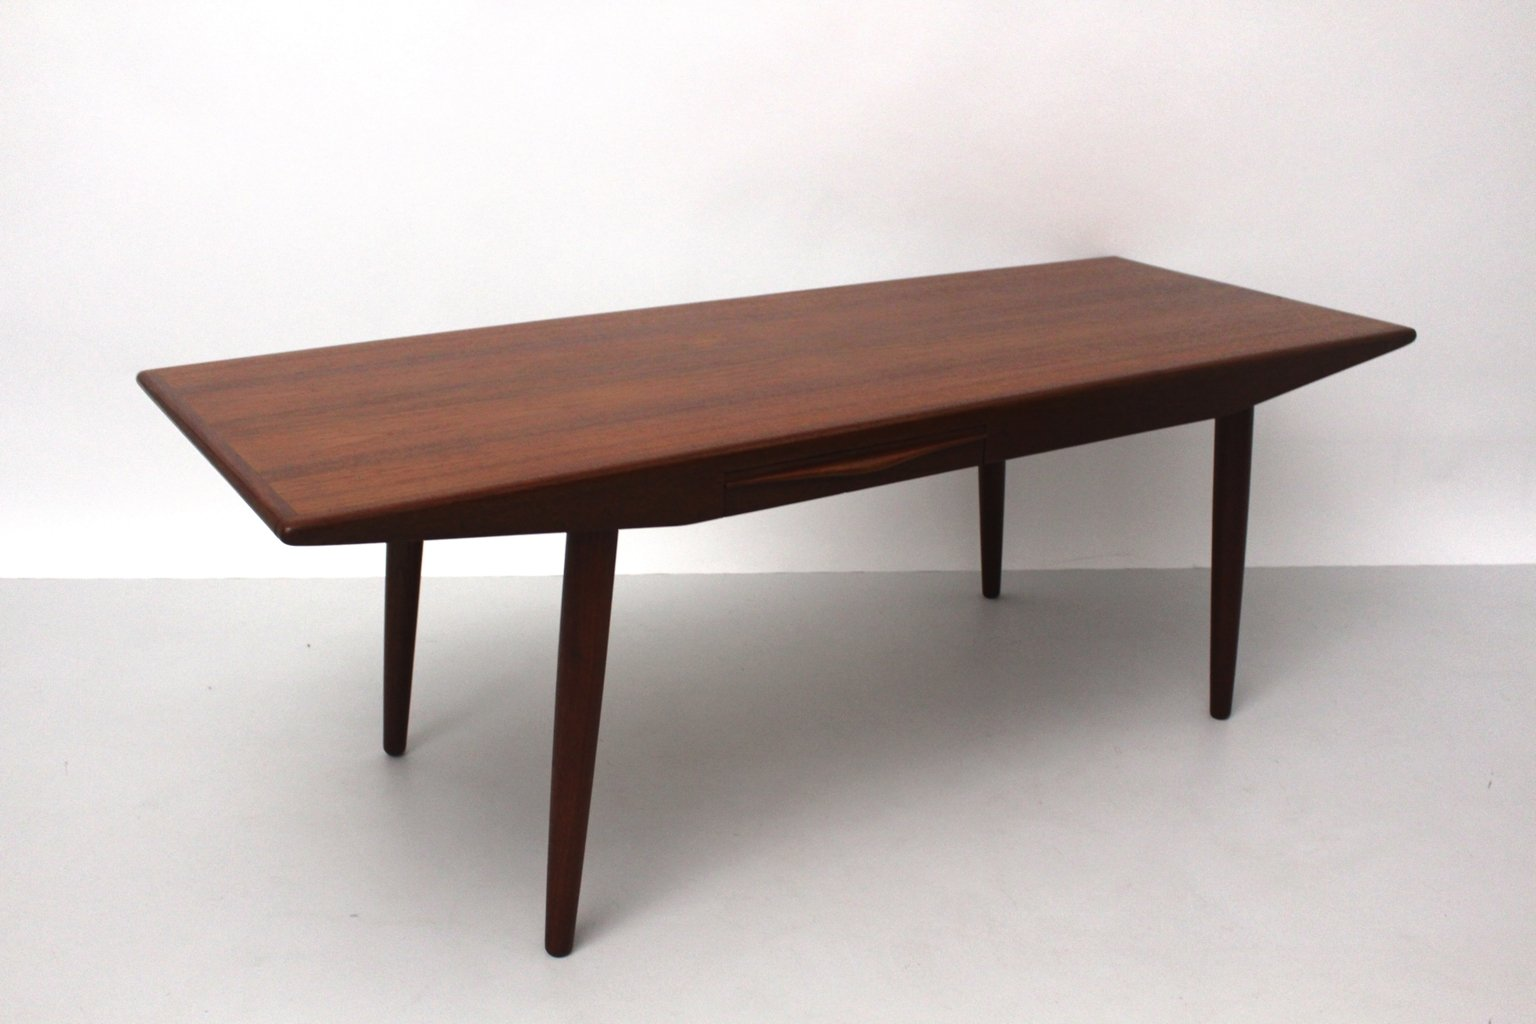 Danish Teak Coffee Table With Drawers By Johannes Andersen 1960s